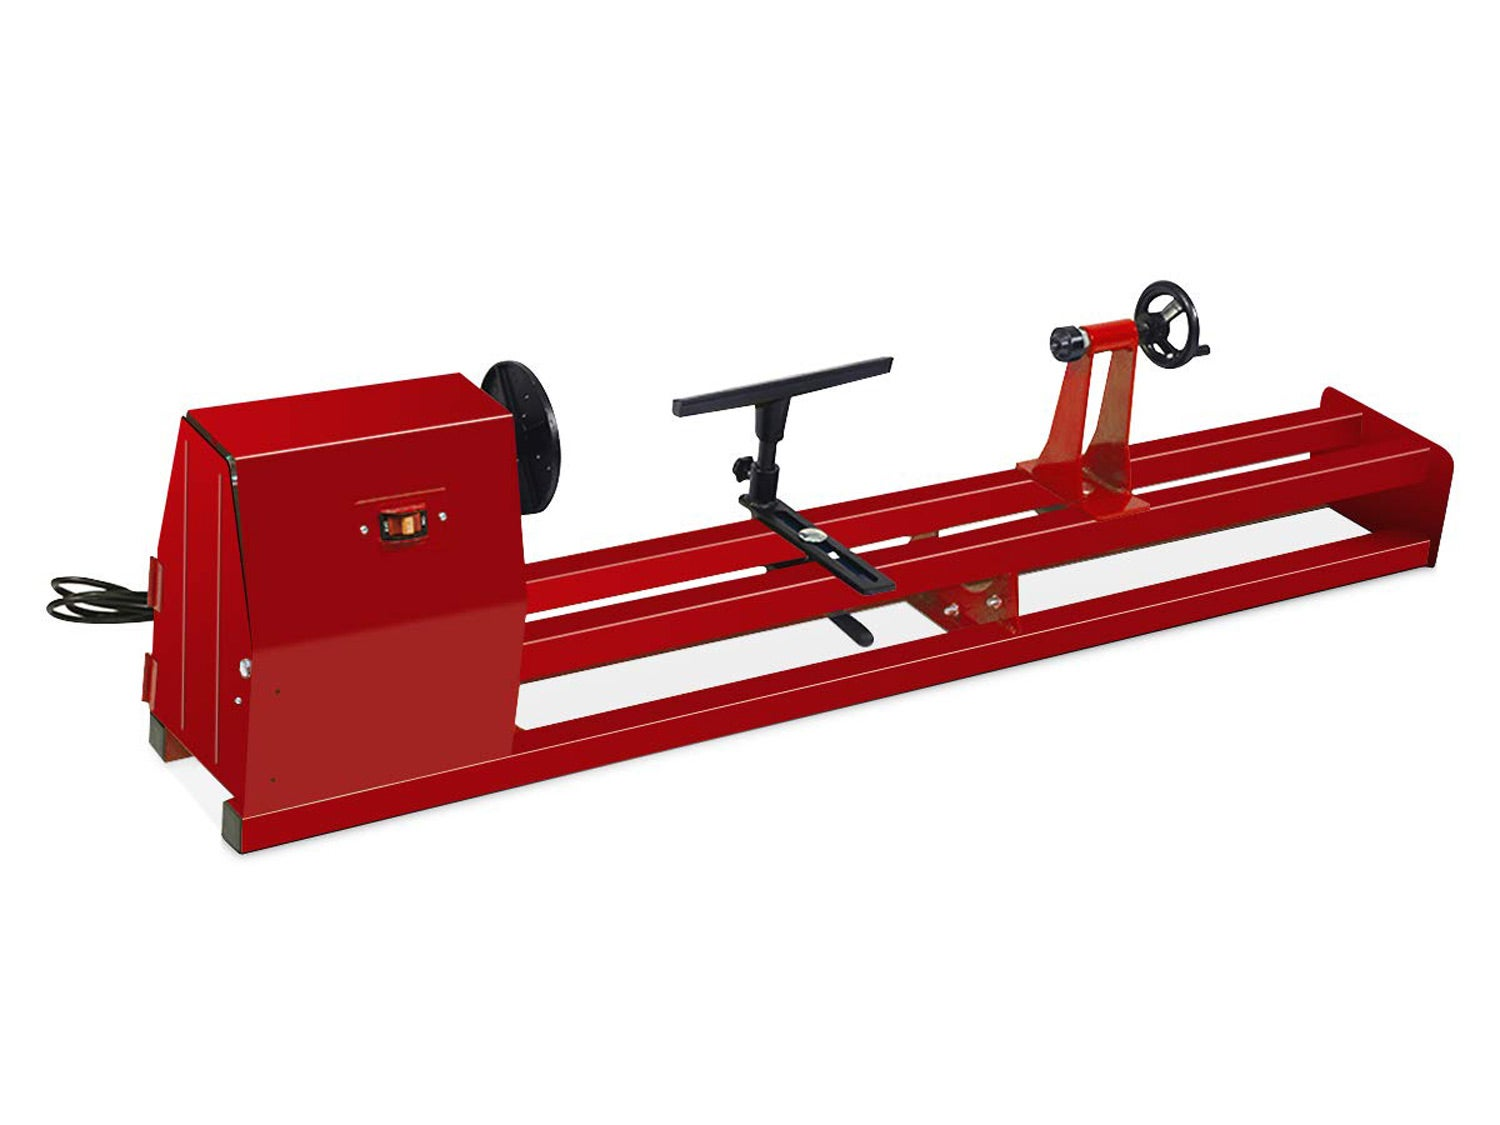 Three Features You Need in a Wood Lathe